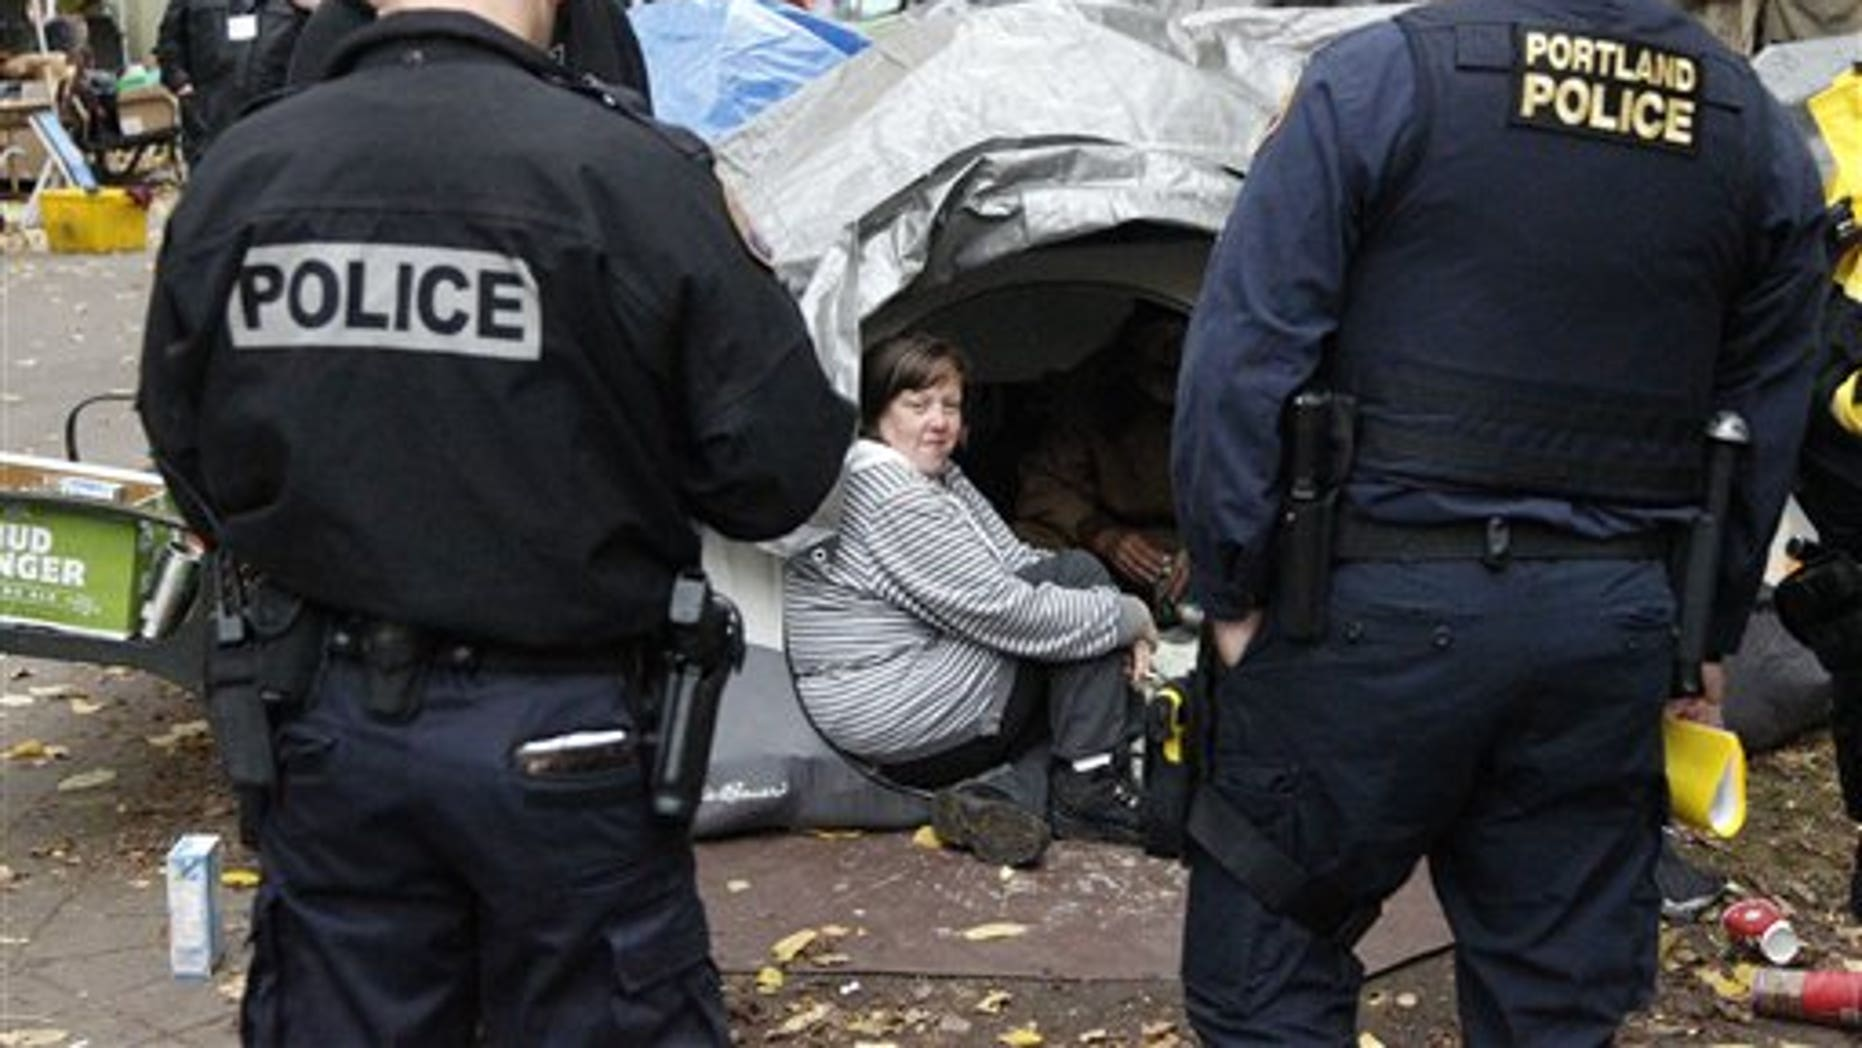 Nov. 11, 2011: Erin Robertson sits in the doorway of a tent while Portland police look on at the Occupy Portland encampment.